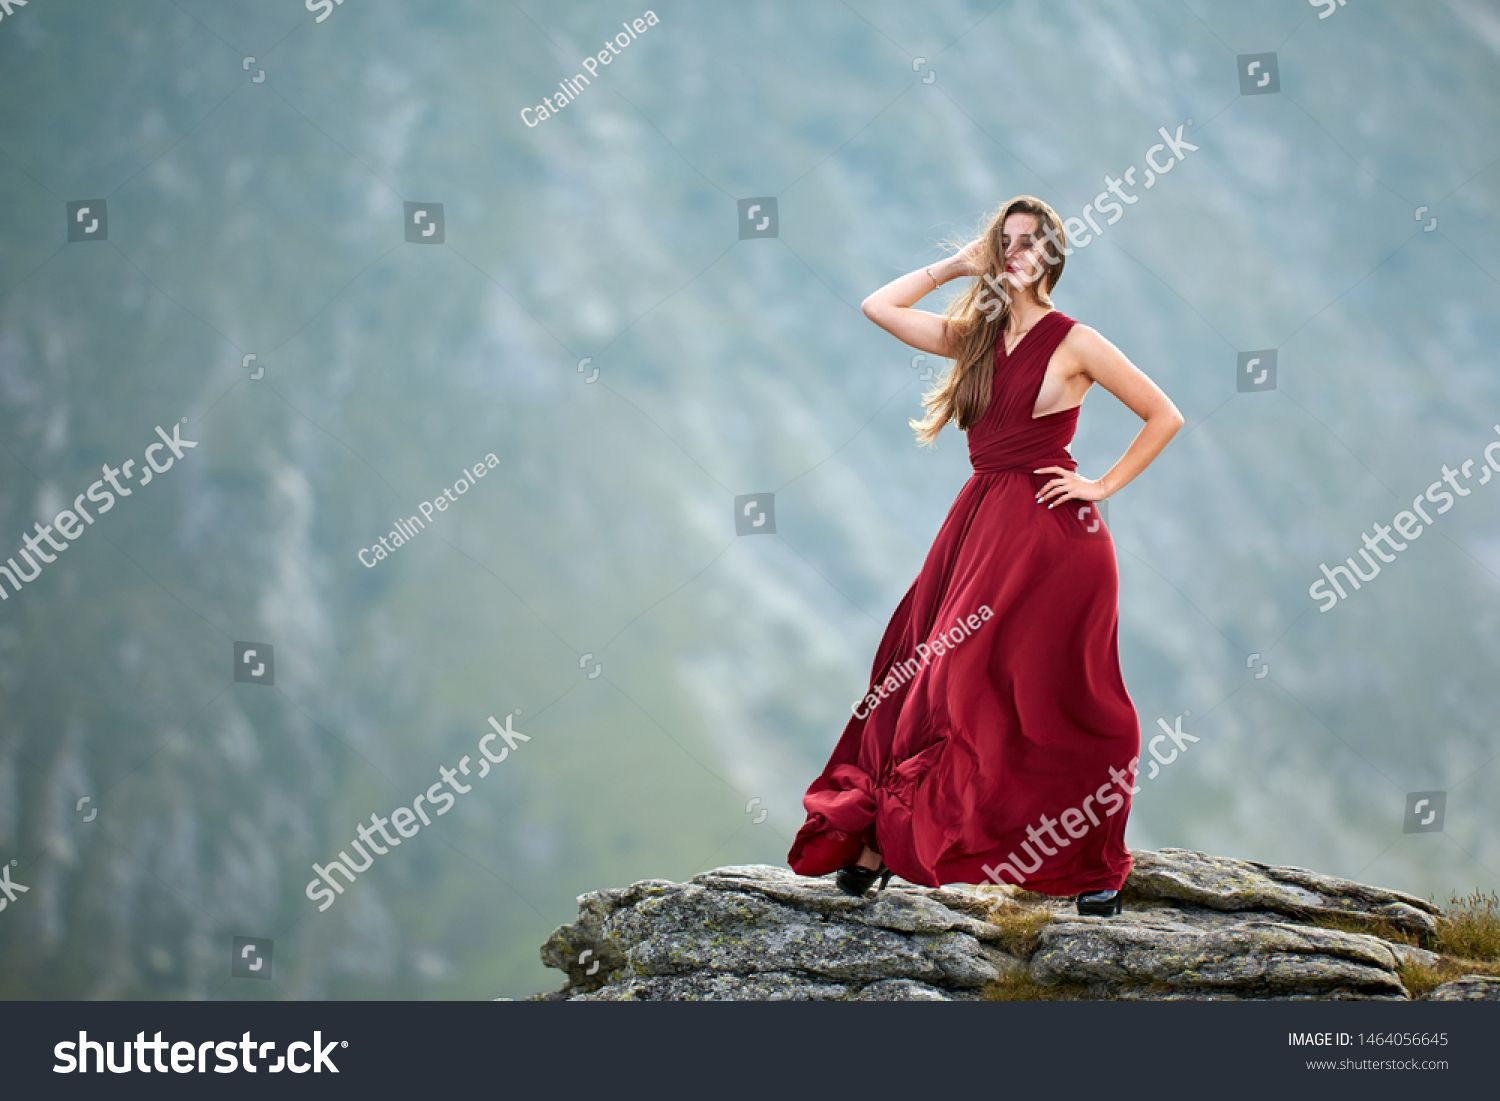 Beautiful female fashion model in red dress on mountain rocks #Sponsored , #spon, #fashion#model#Beautiful#female